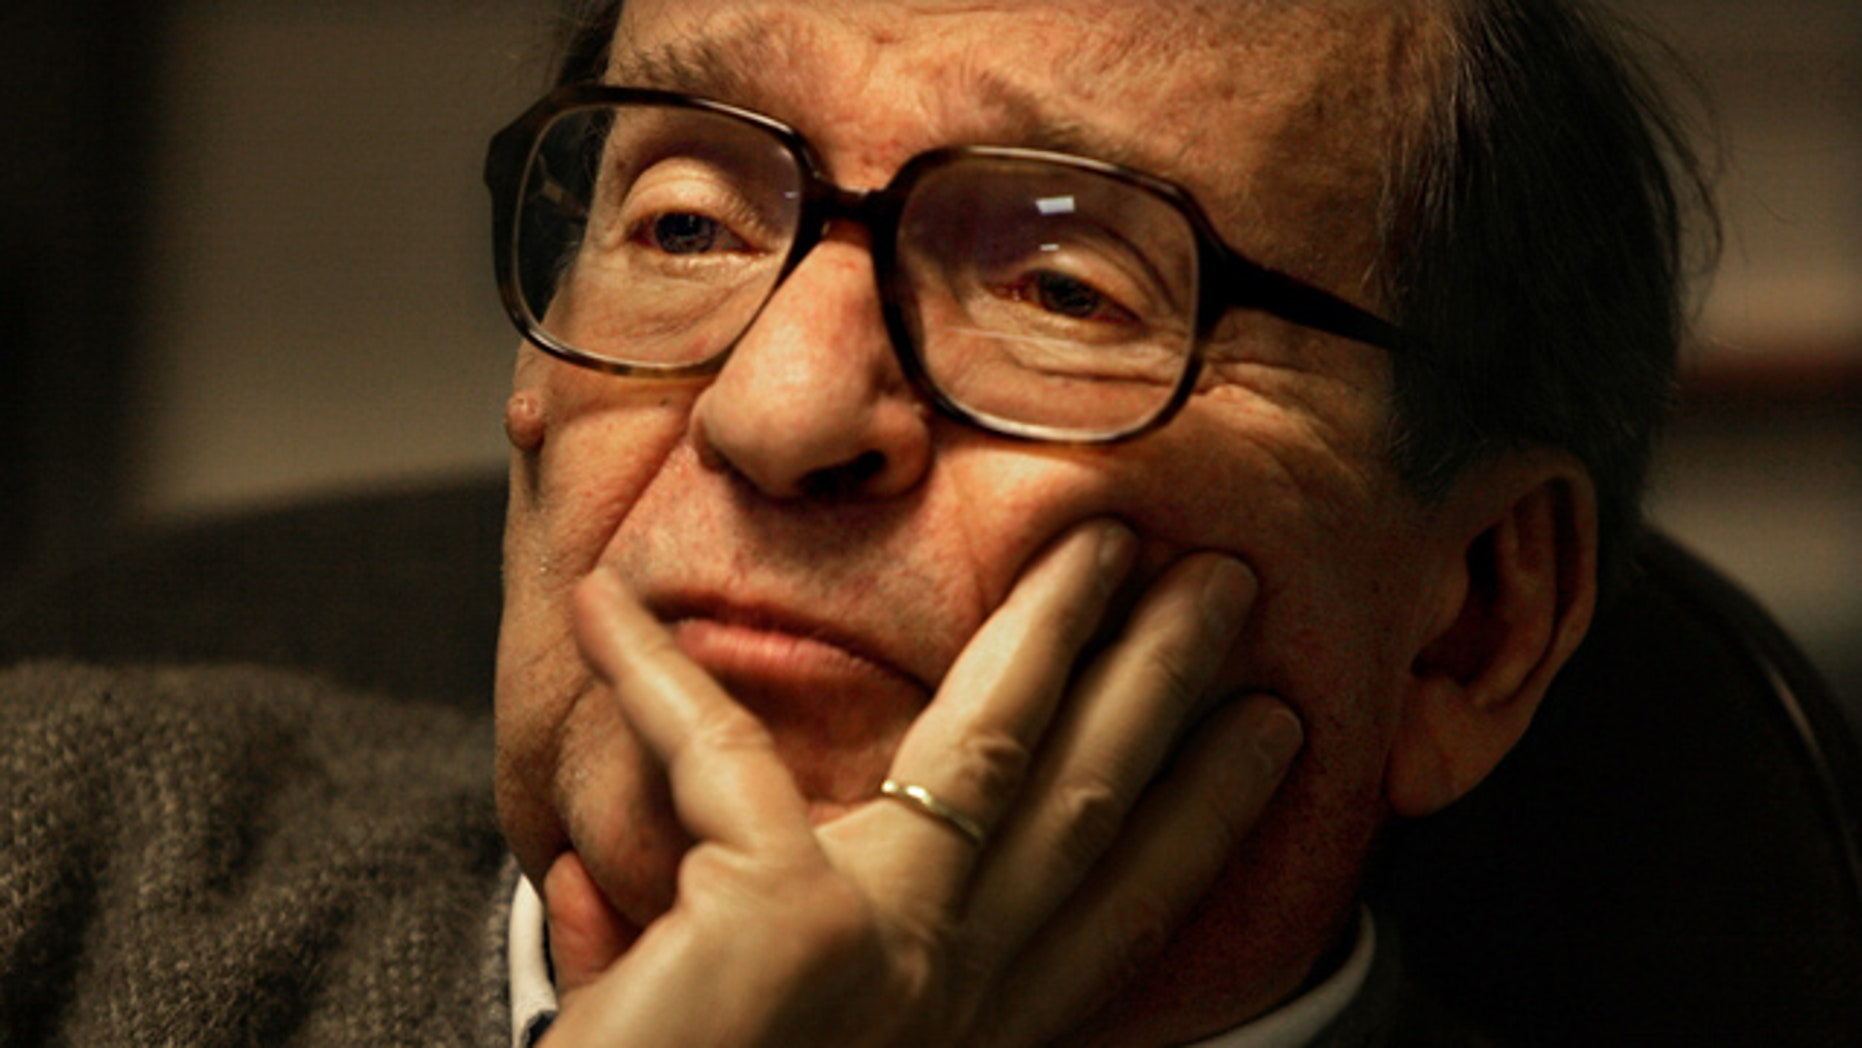 """This Tuesday Jan. 31, 2006 picture shows director Sidney Lumet during an interview in his New York office where he discussed the current state of TV news, the focus of his 1976 film, """"Network."""""""